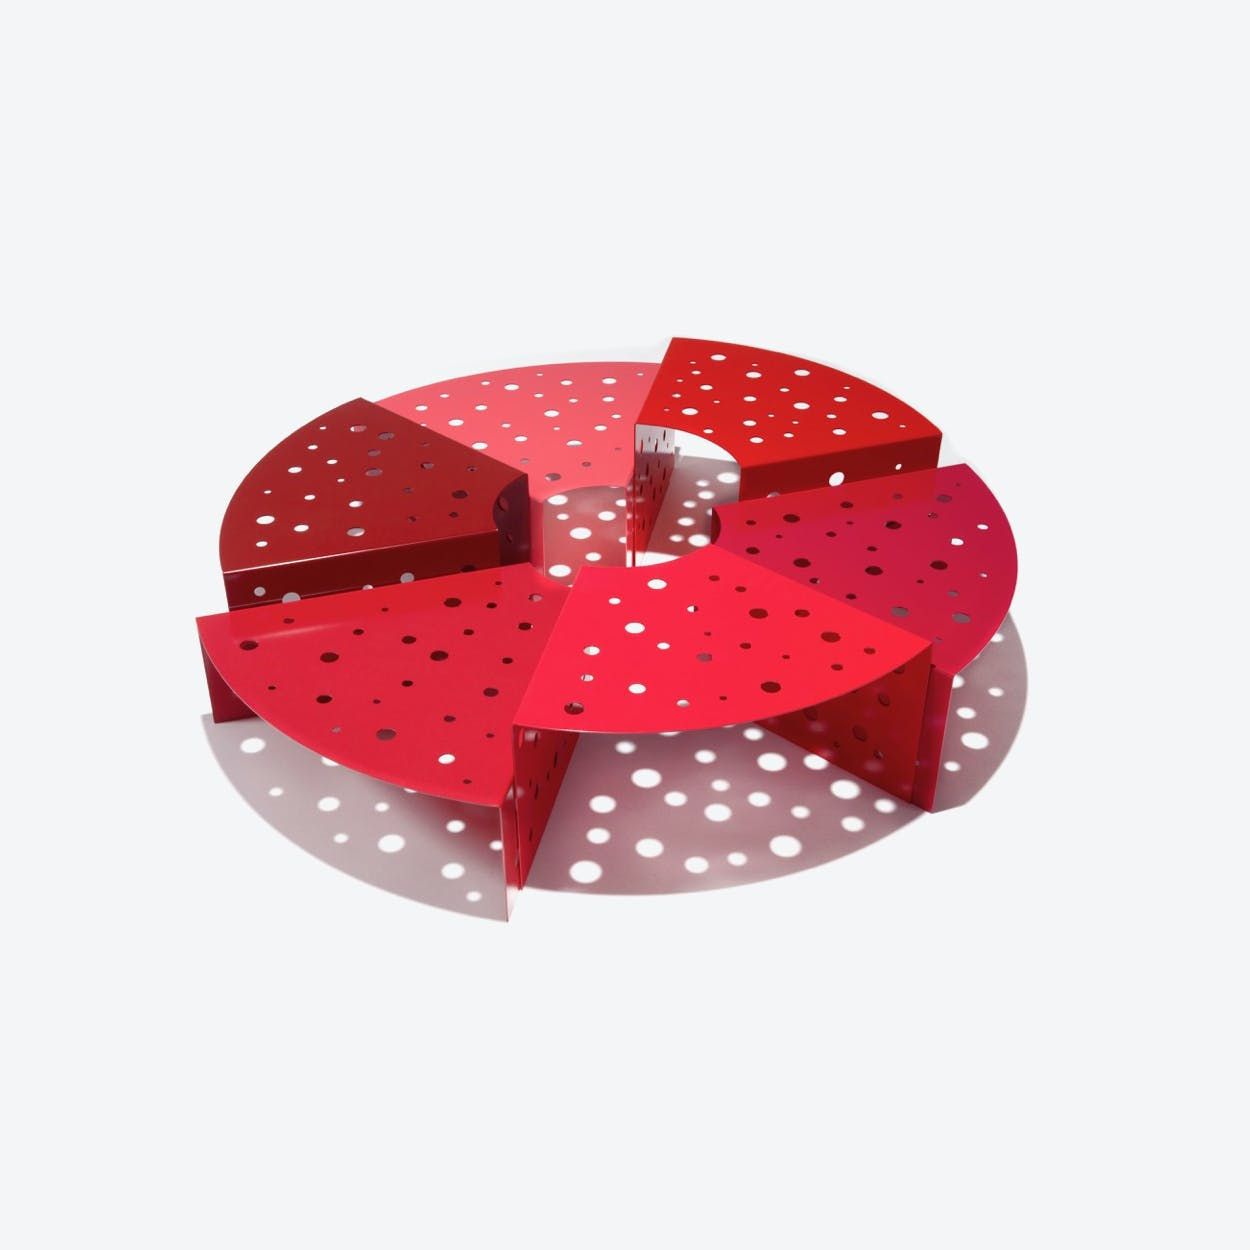 Hexalto Coffee Table In Red Lacquered Metal